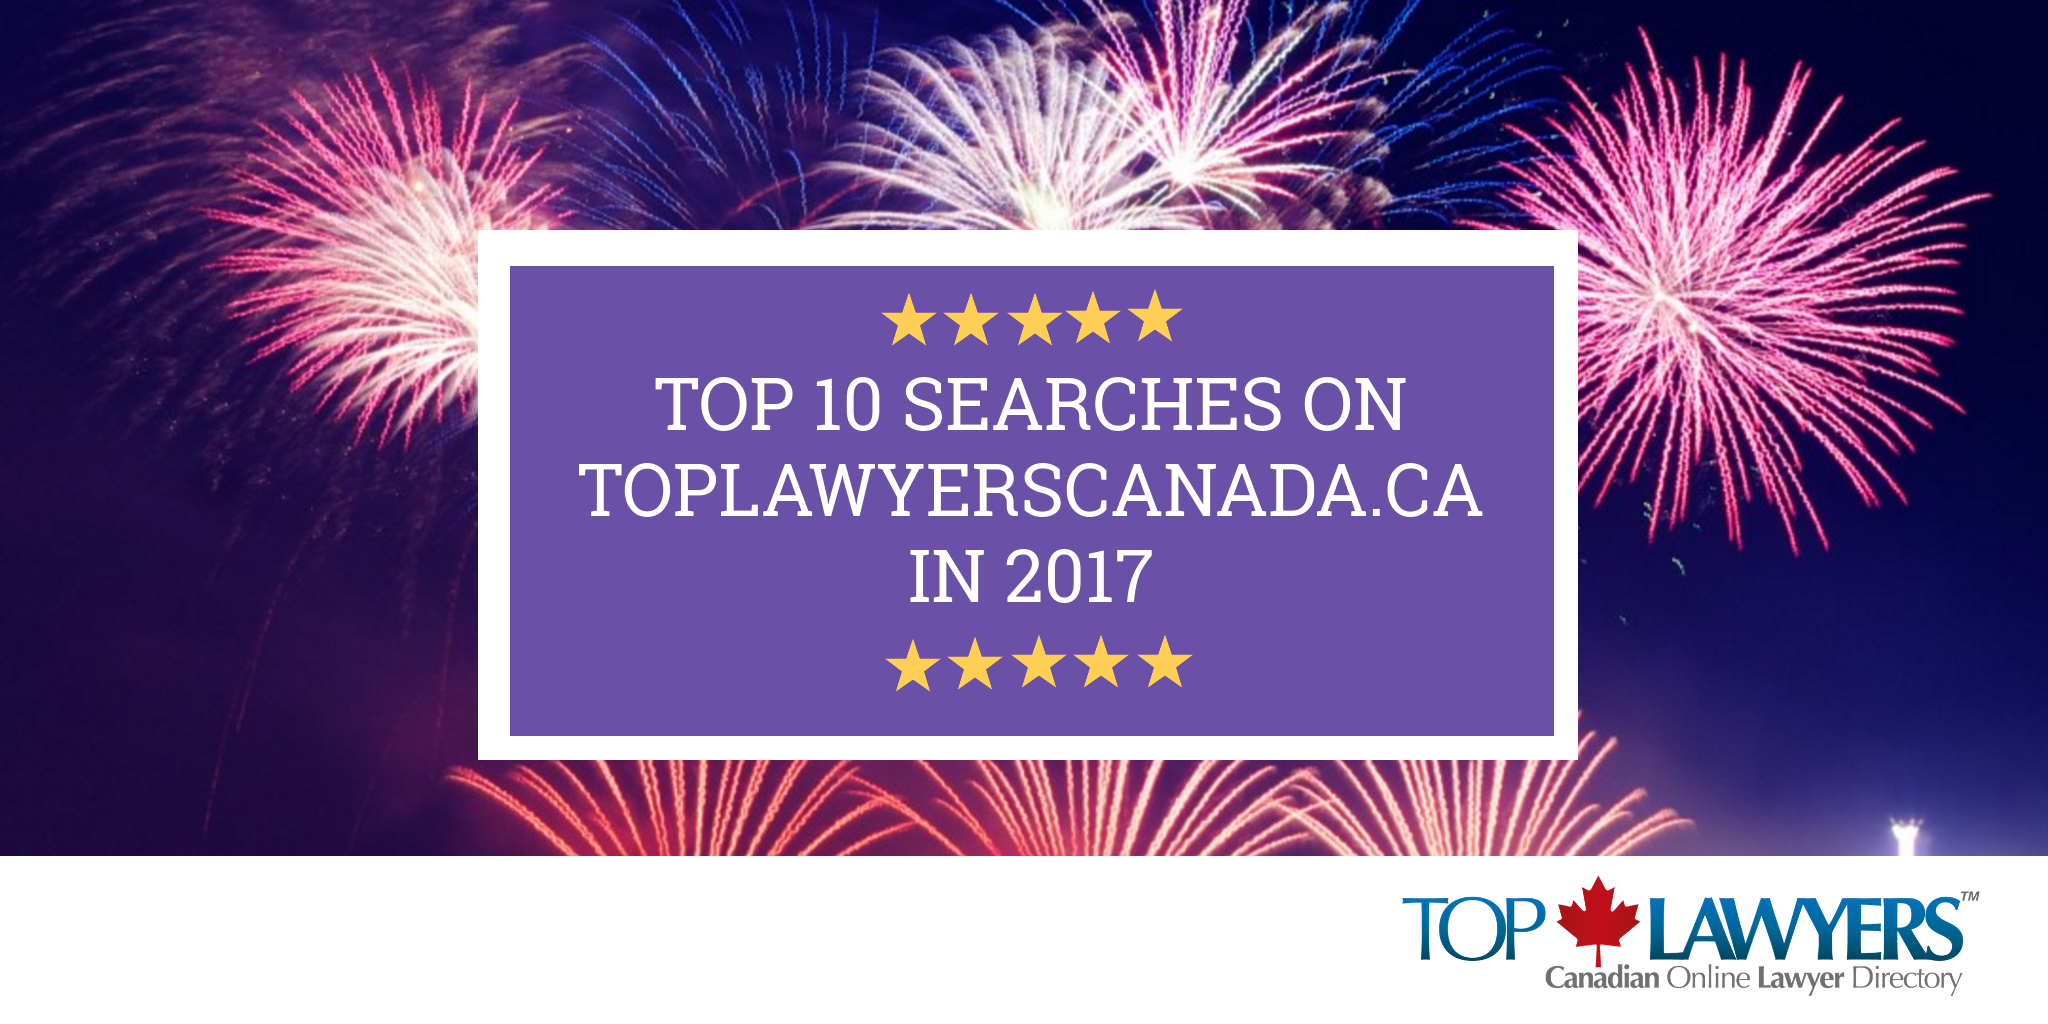 TOP 10 SEARCHES BY ON TOP LAWYERS 2017